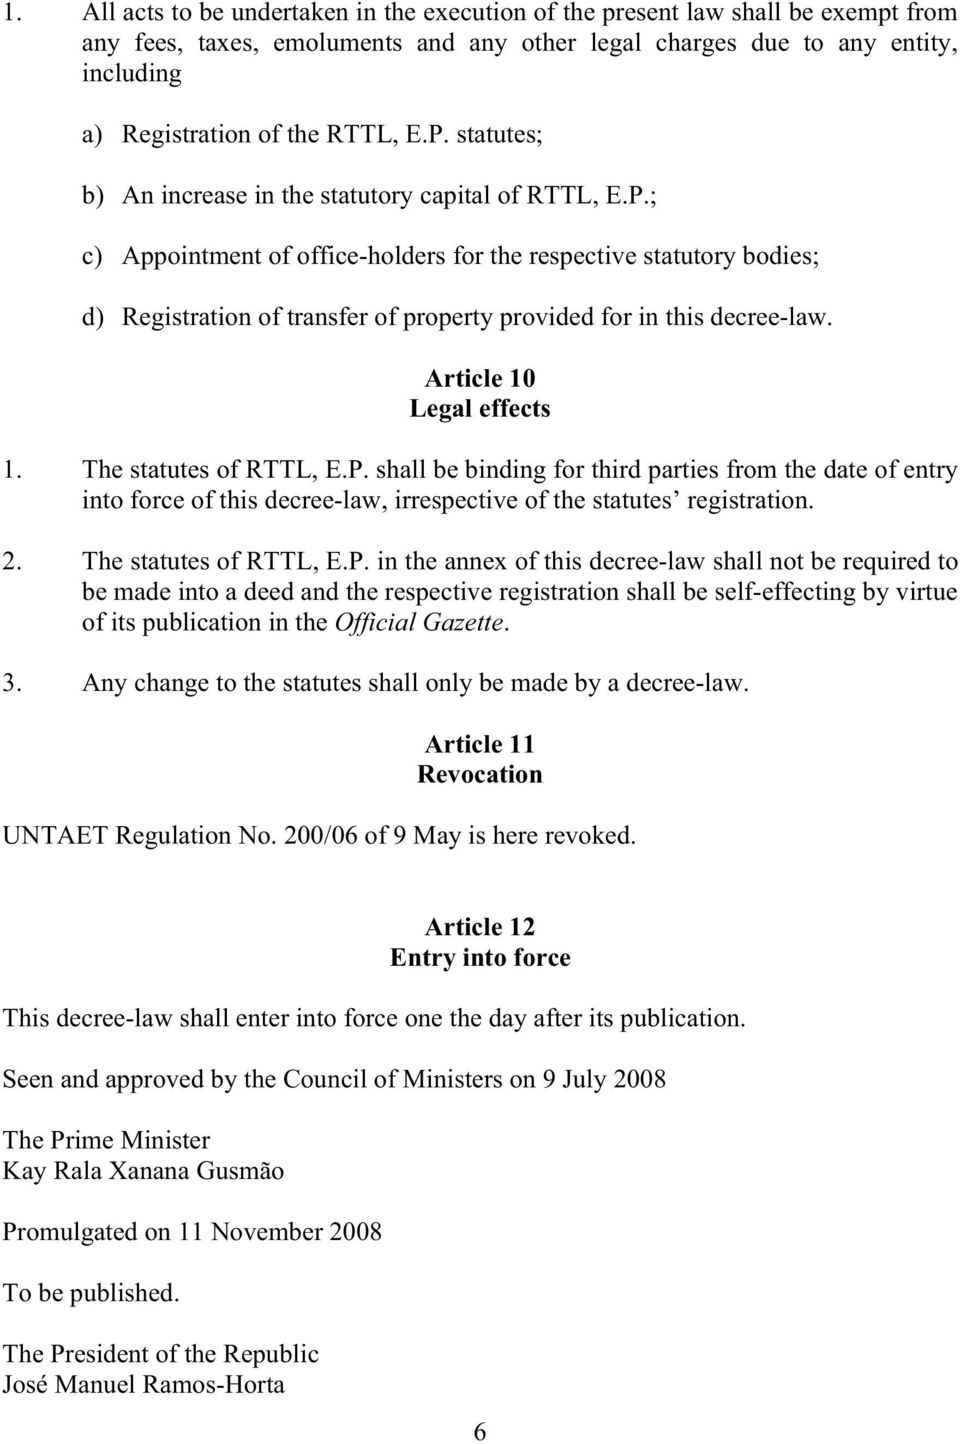 Article 10 Legal effects 1. The statutes of RTTL, E.P. shall be binding for third parties from the date of entry into force of this decree-law, irrespective of the statutes registration. 2.